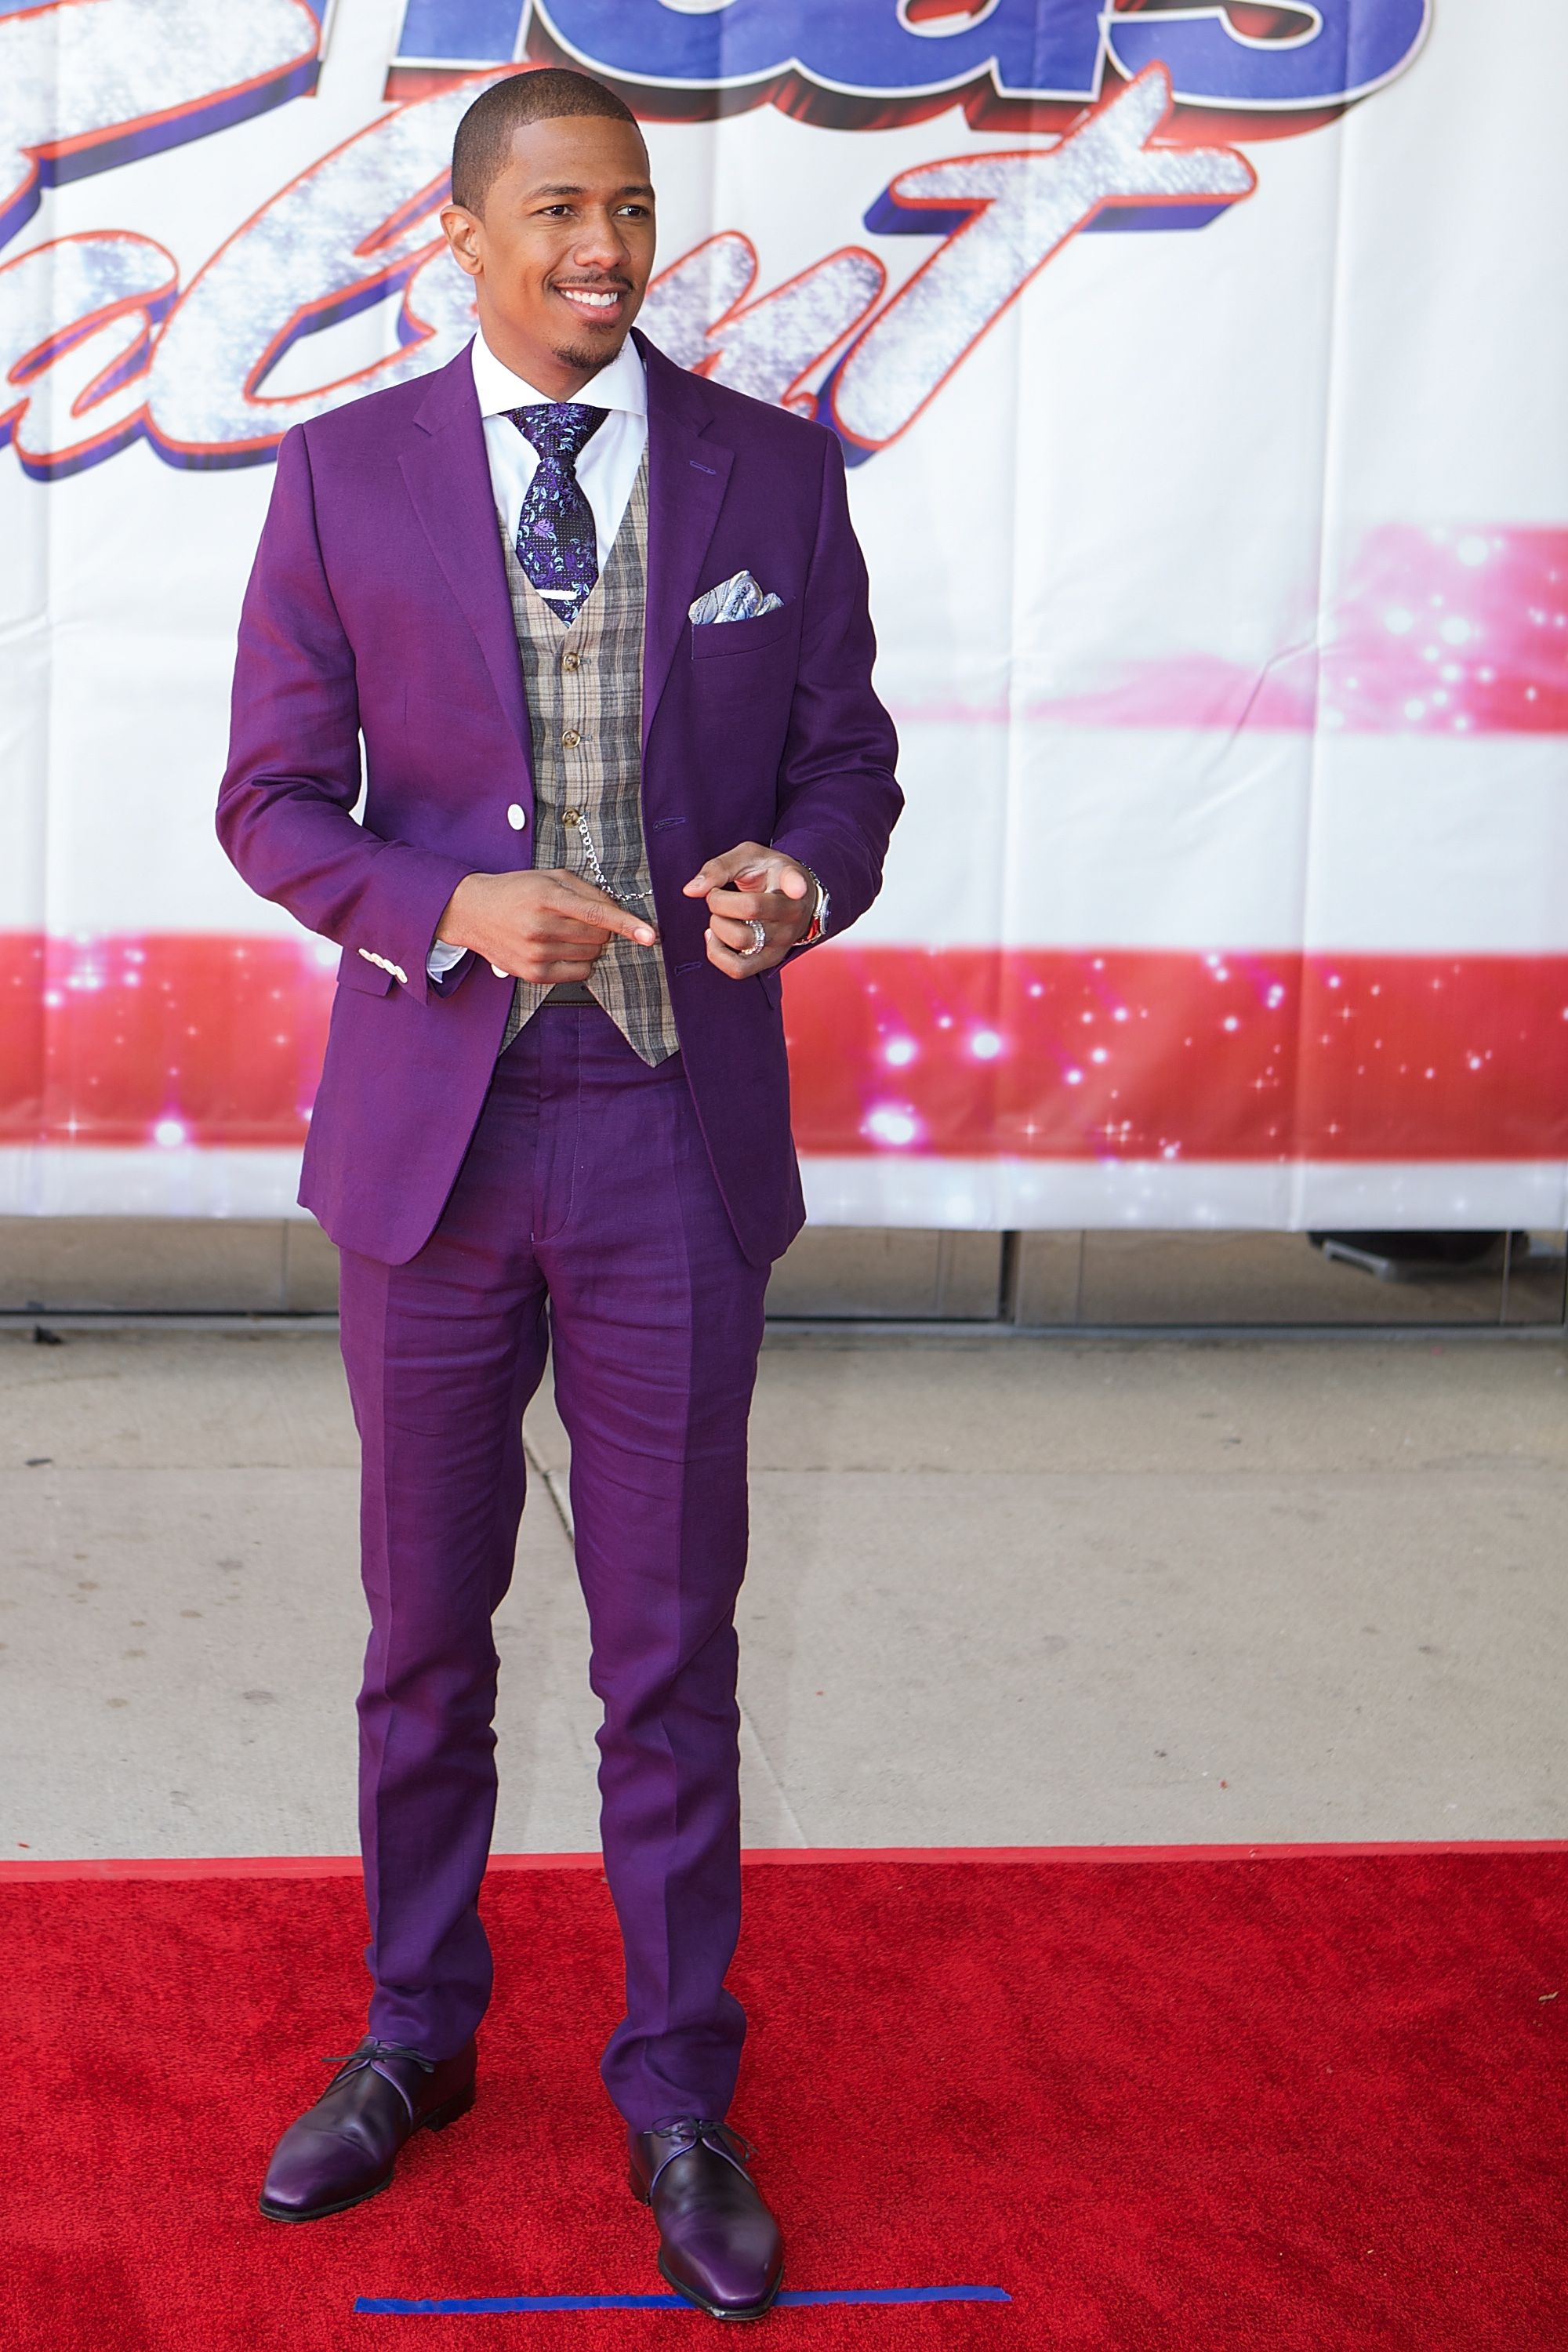 Nick Mariah S Biggest Parenting Disagreement Nick Cannon Purple Suits Well Dressed Men